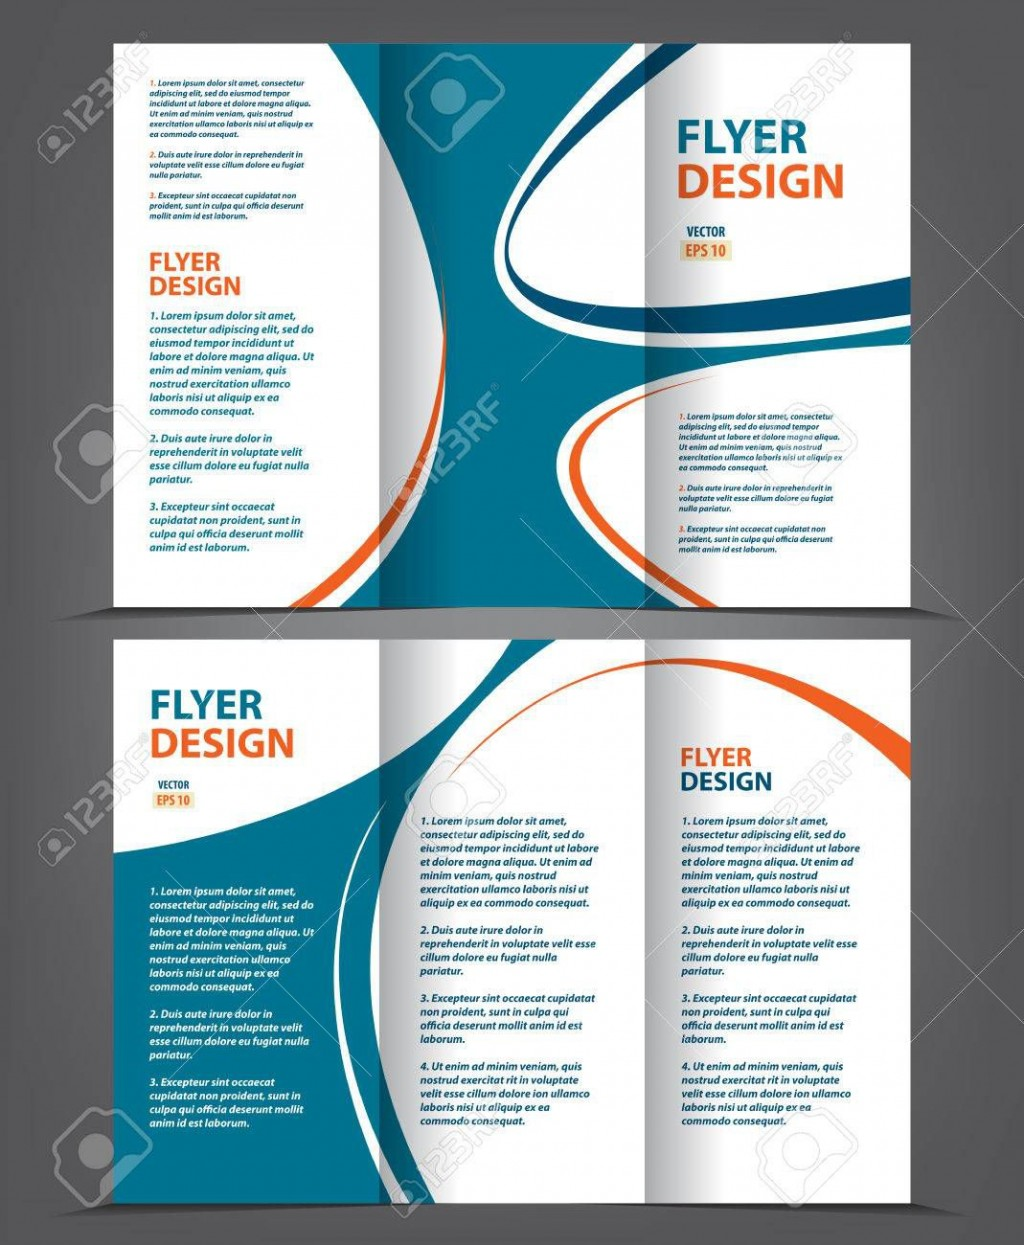 001 Archaicawful Three Fold Brochure Template Concept  Word Free 3 Psd DownloadLarge